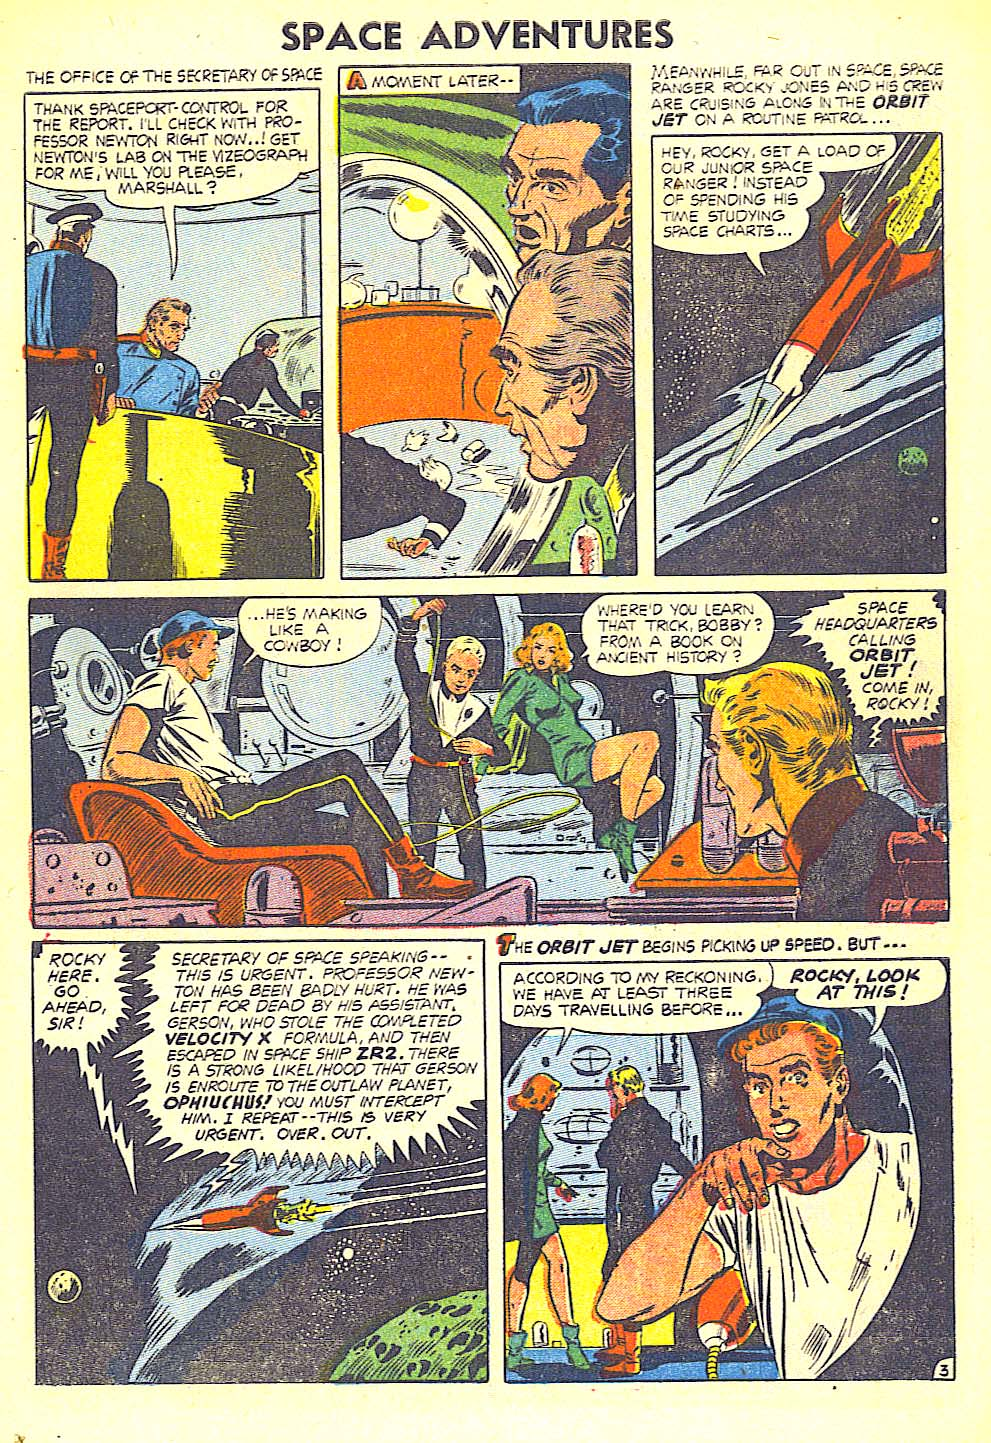 Saved From The Paper Drive Comic Book Story 77 - Imagez co